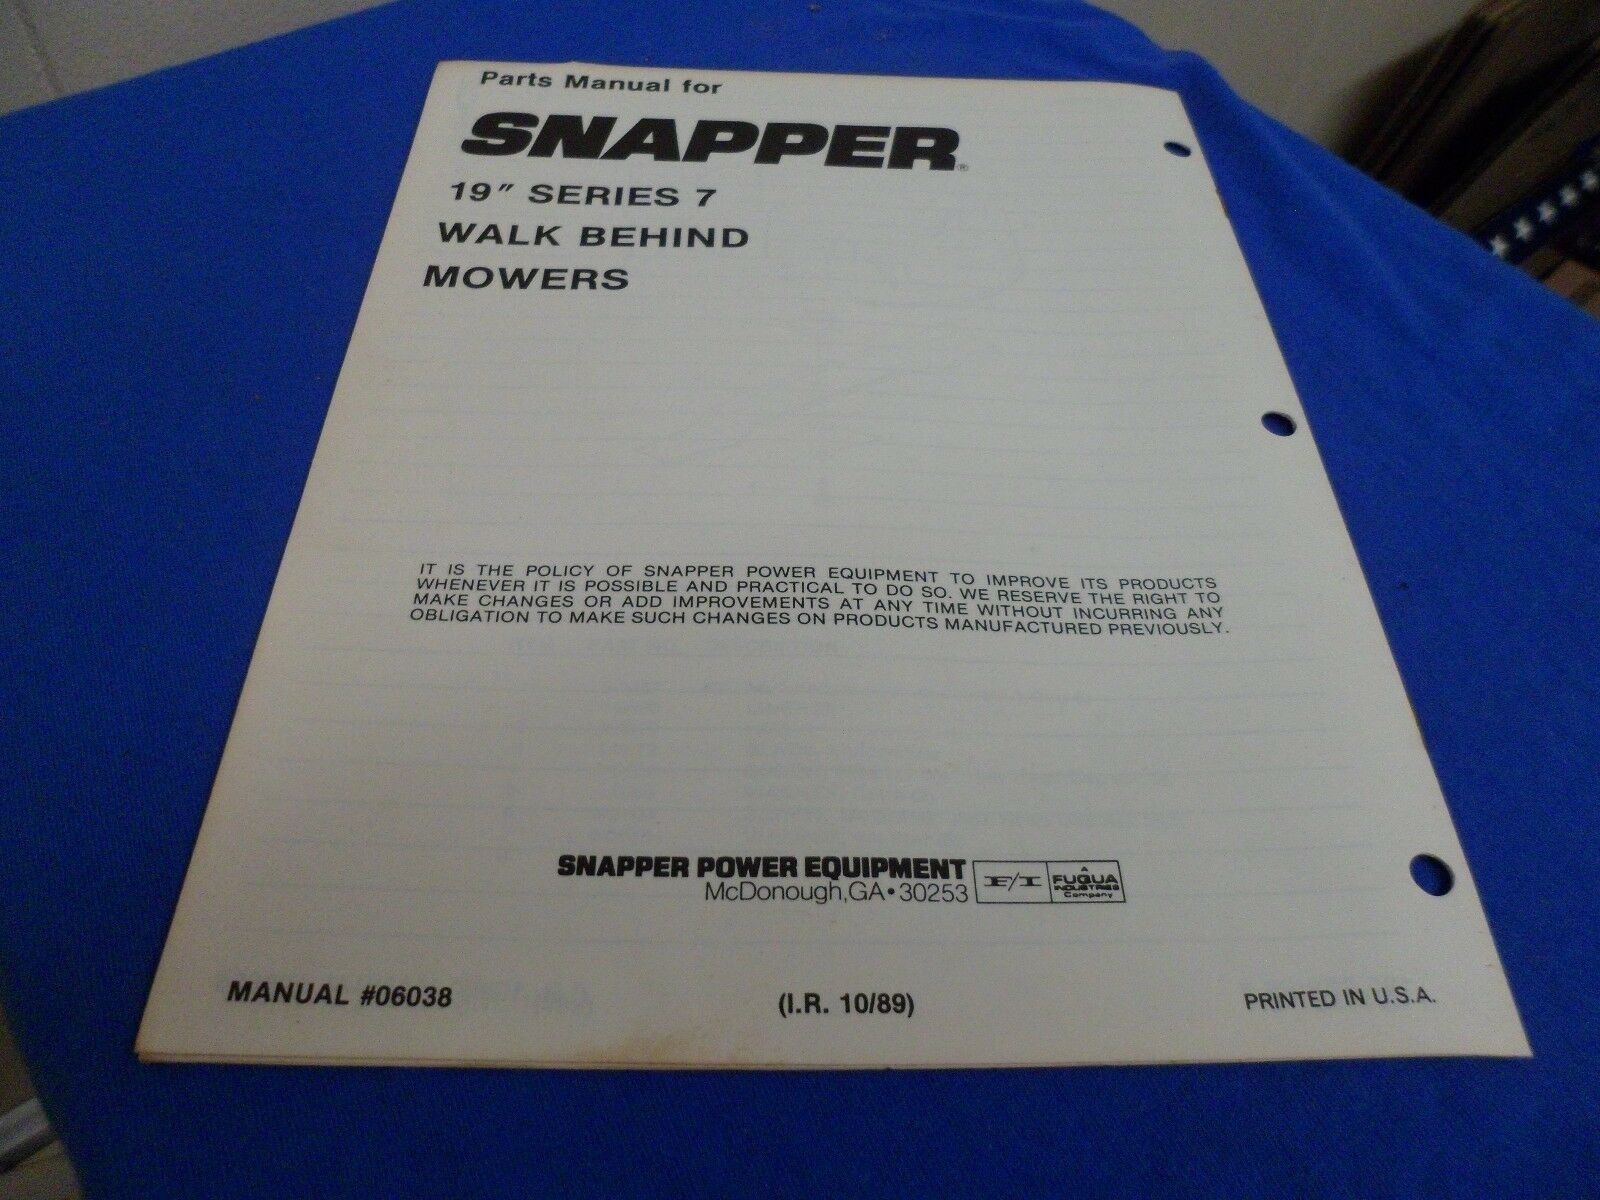 Parts Manual For Snapper 19 Series 7 Walk Behind Mowers Ebay Diagram Norton Secured Powered By Verisign